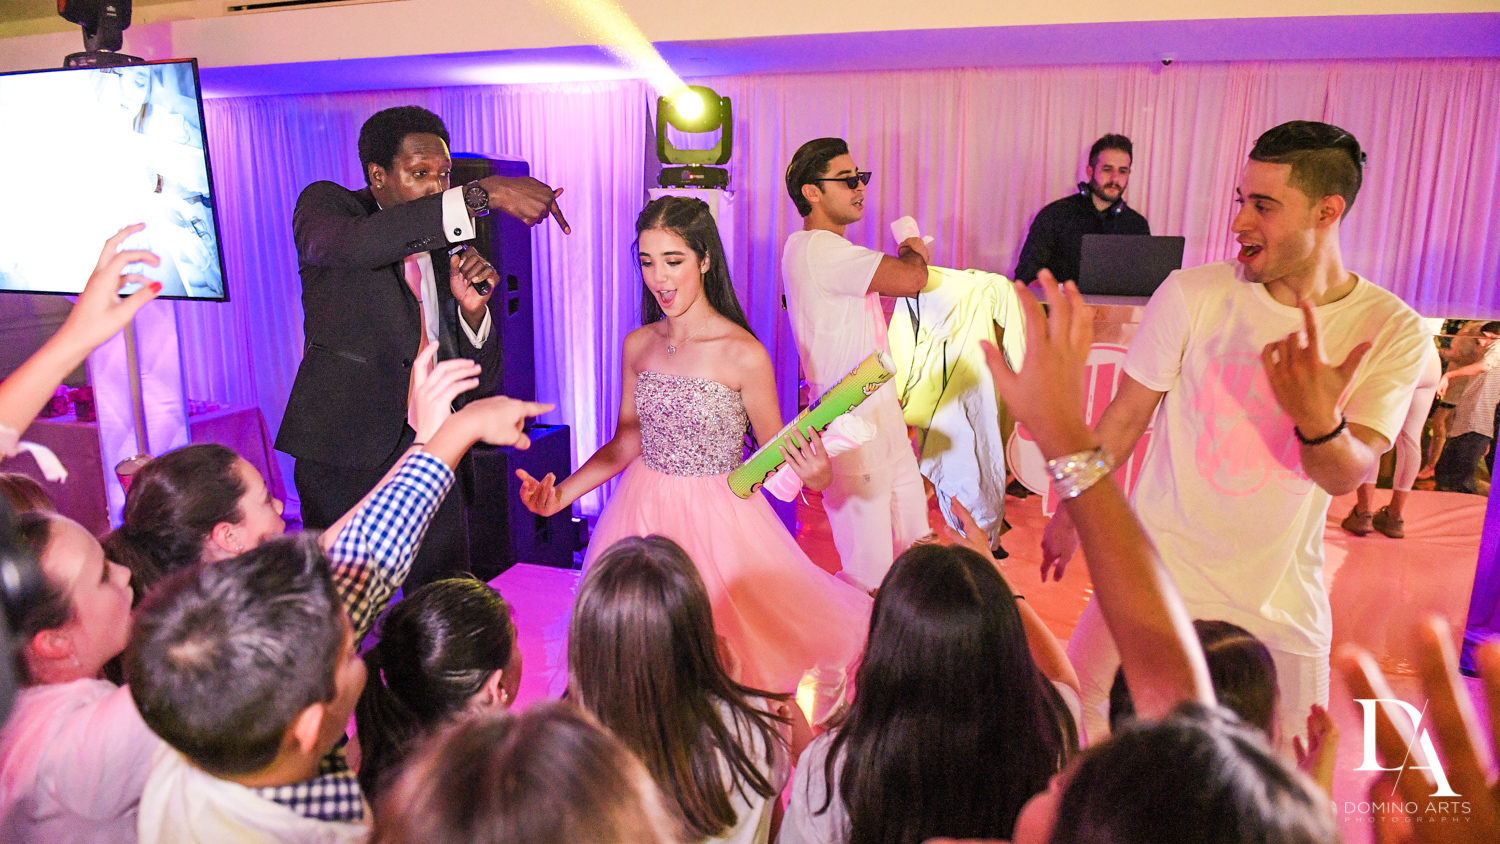 Triple P Entertainment at Bat Mitzvah at Saint Andrews Country Club South Florida by Domino Arts Photography